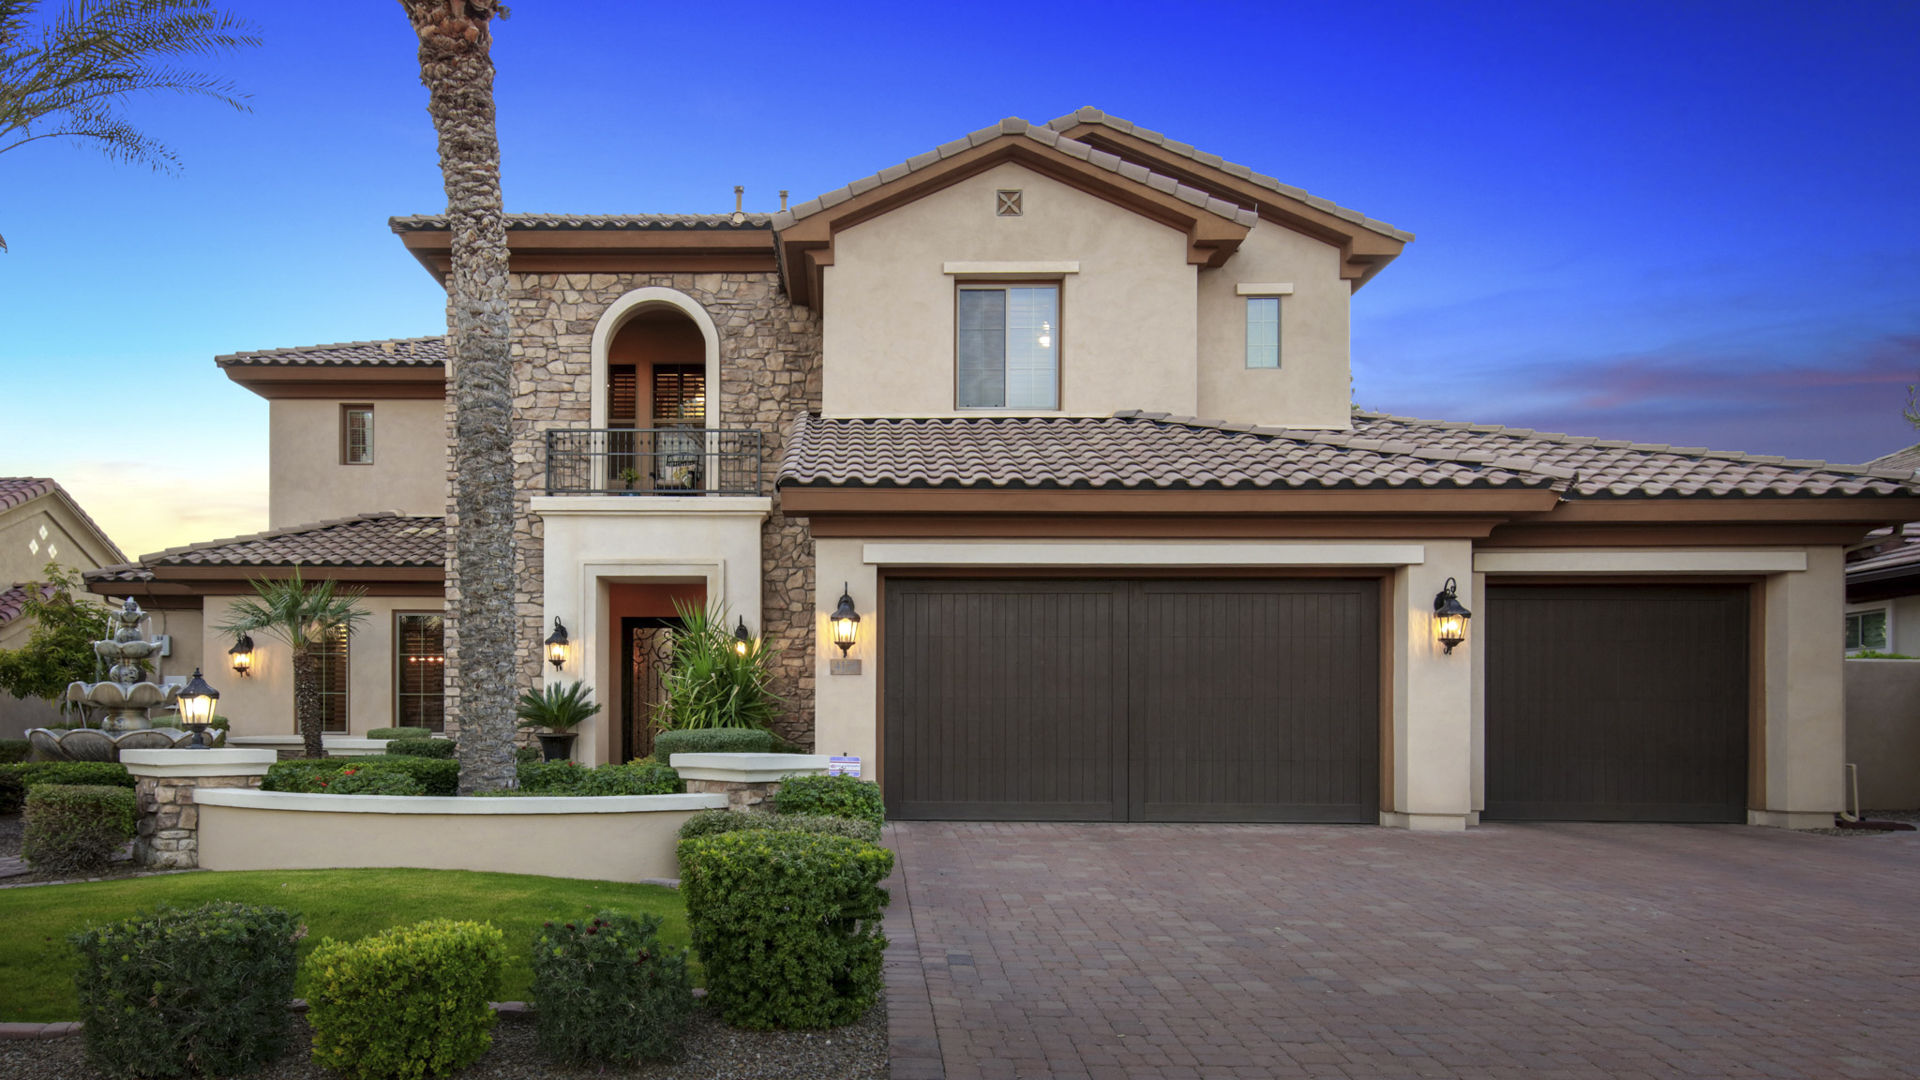 NEW LISTING - 4170 S Pacific Dr, Chandler, AZ 85248 - Fulton Ranch | Amy Jones Group Copy